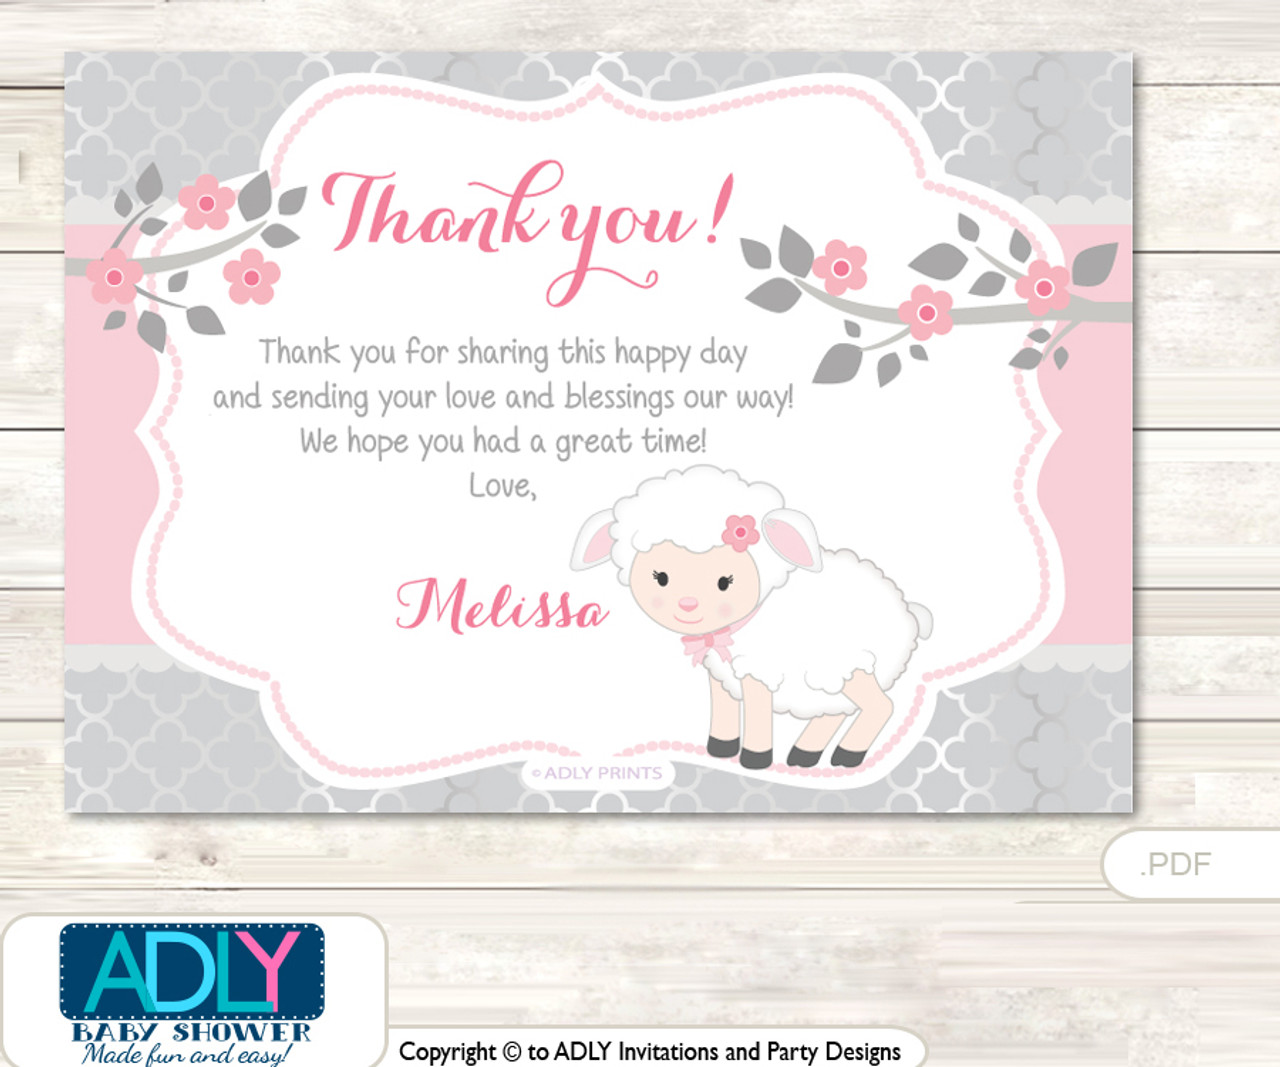 photo regarding Baby Shower Card Printable known as Red Lamb Thank yourself Printable Card with Popularity Personalization for Kid Shower or Birthday Celebration